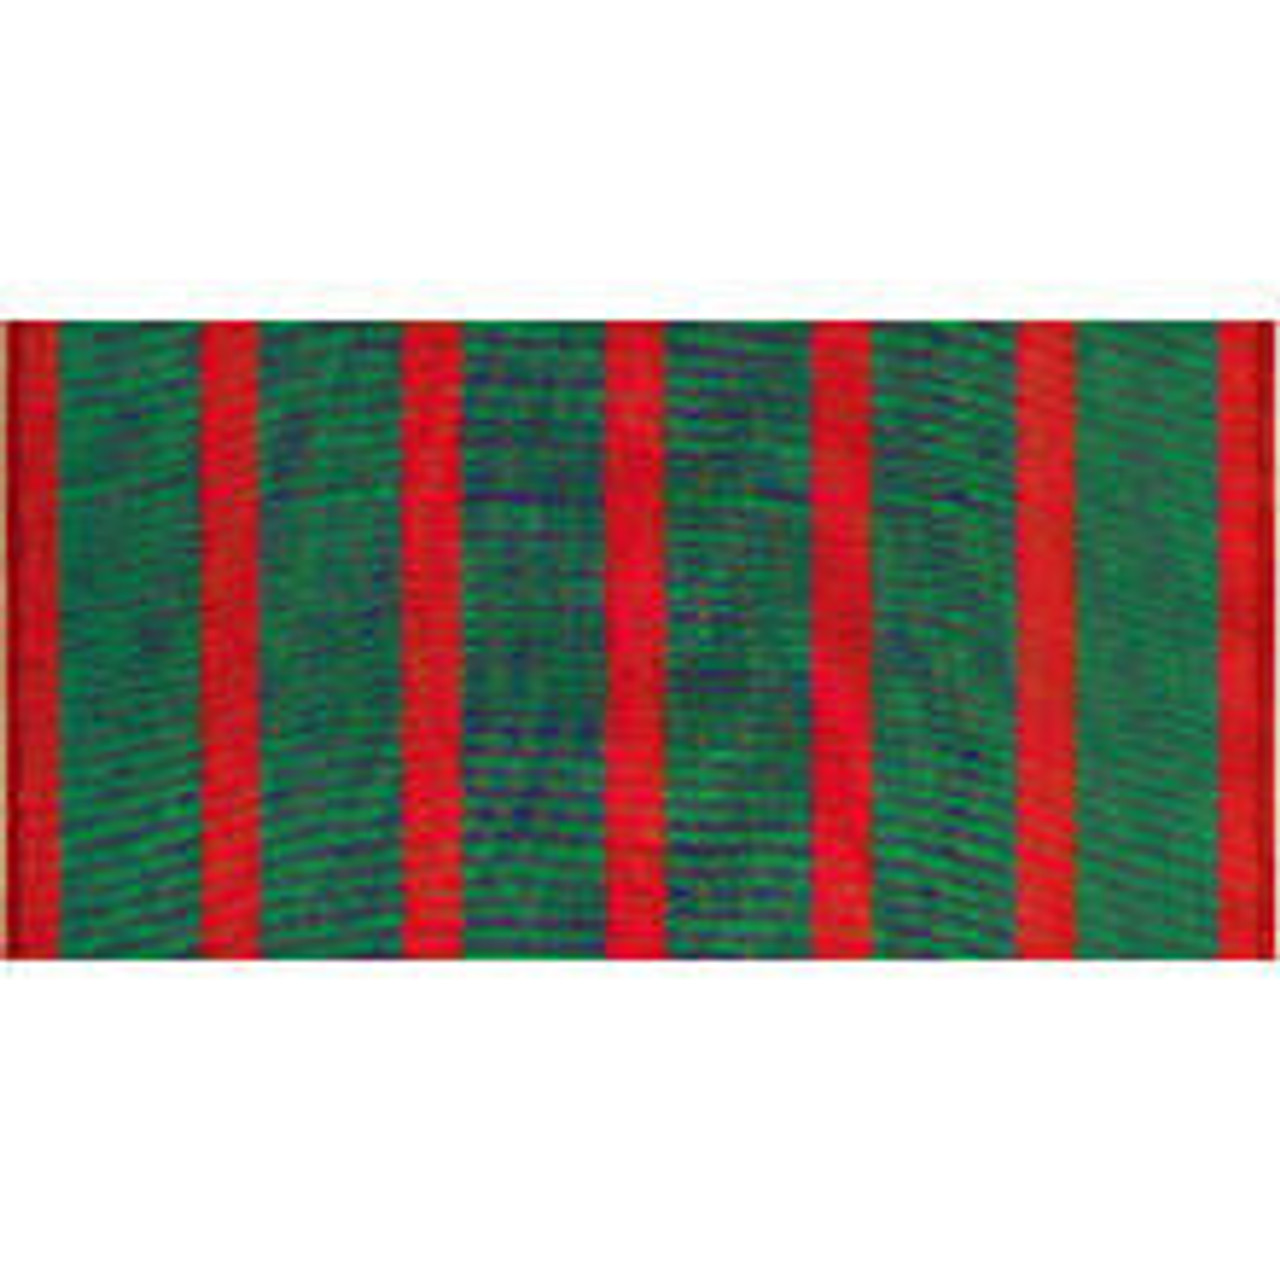 French Croix de Guerre WWI Streamer made of rayon with grommet or sleeve at top. This Dark Green and Red Stripes with Inscription comes in size 2 3/2 x 3 or 2 3/2 x 4.